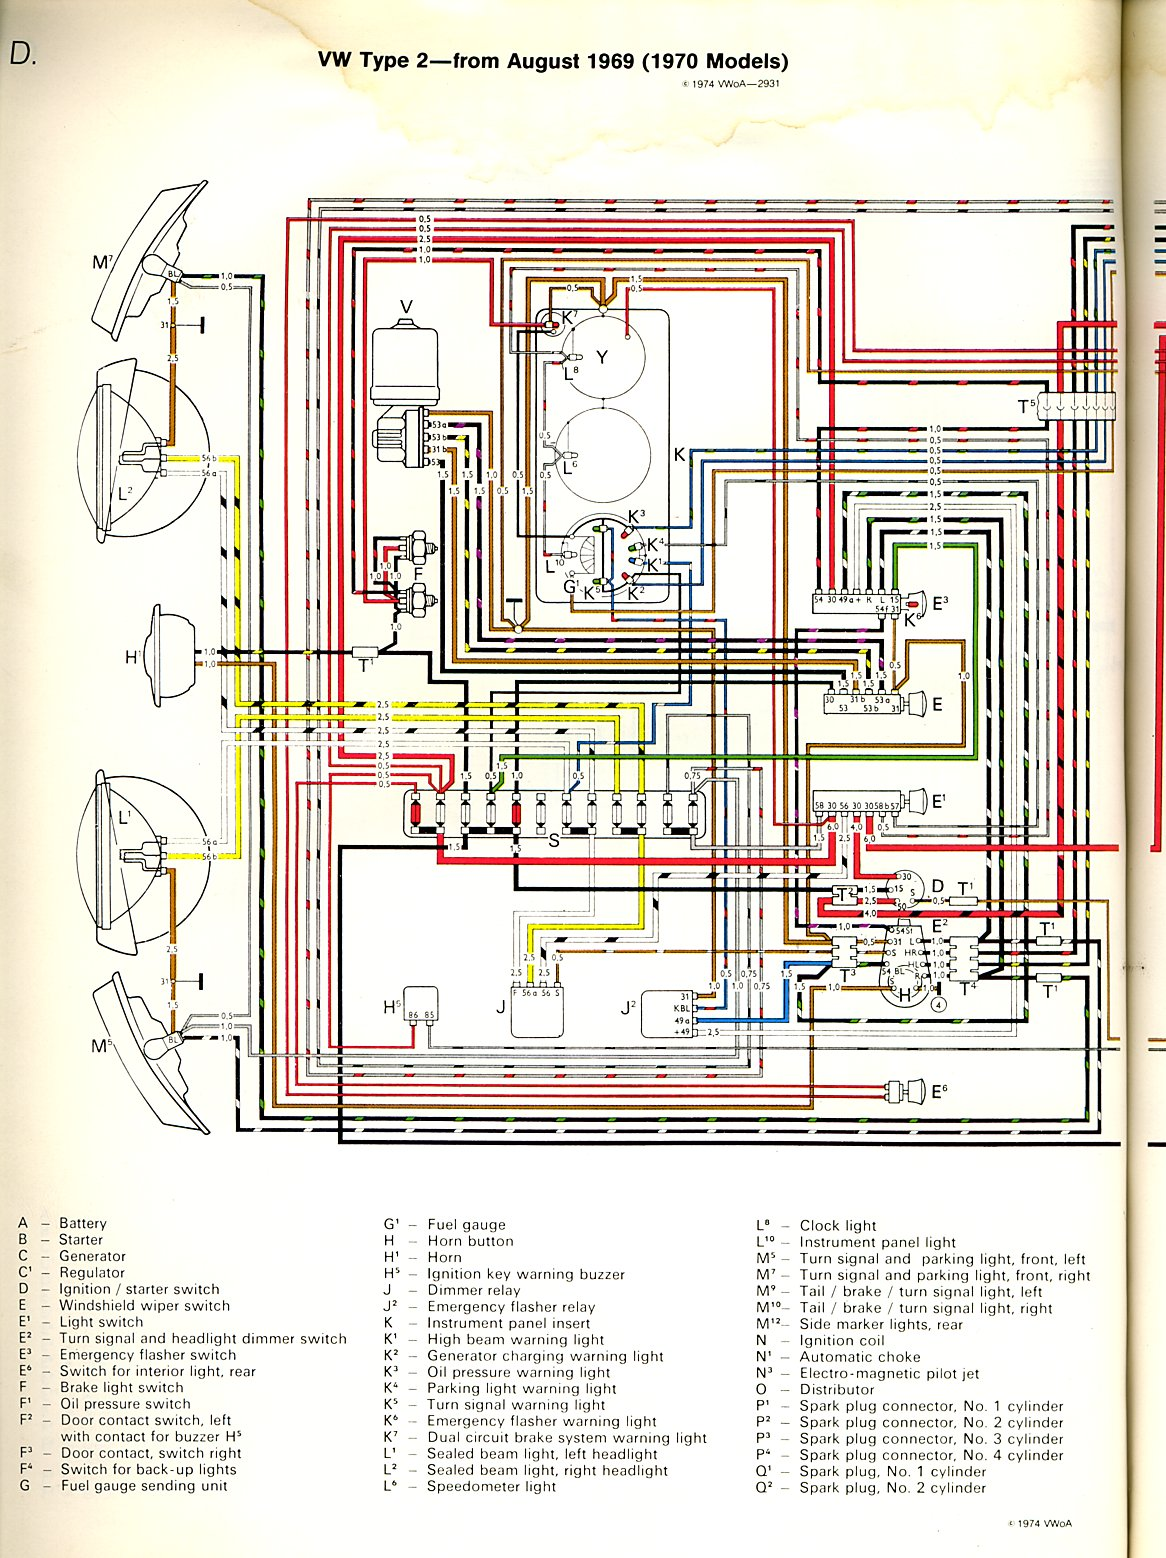 1970 Vw Bus Wiring Diagram Just Another Blog 1971 Chevy Wiper Thesamba Com Type 2 Diagrams Rh Camper